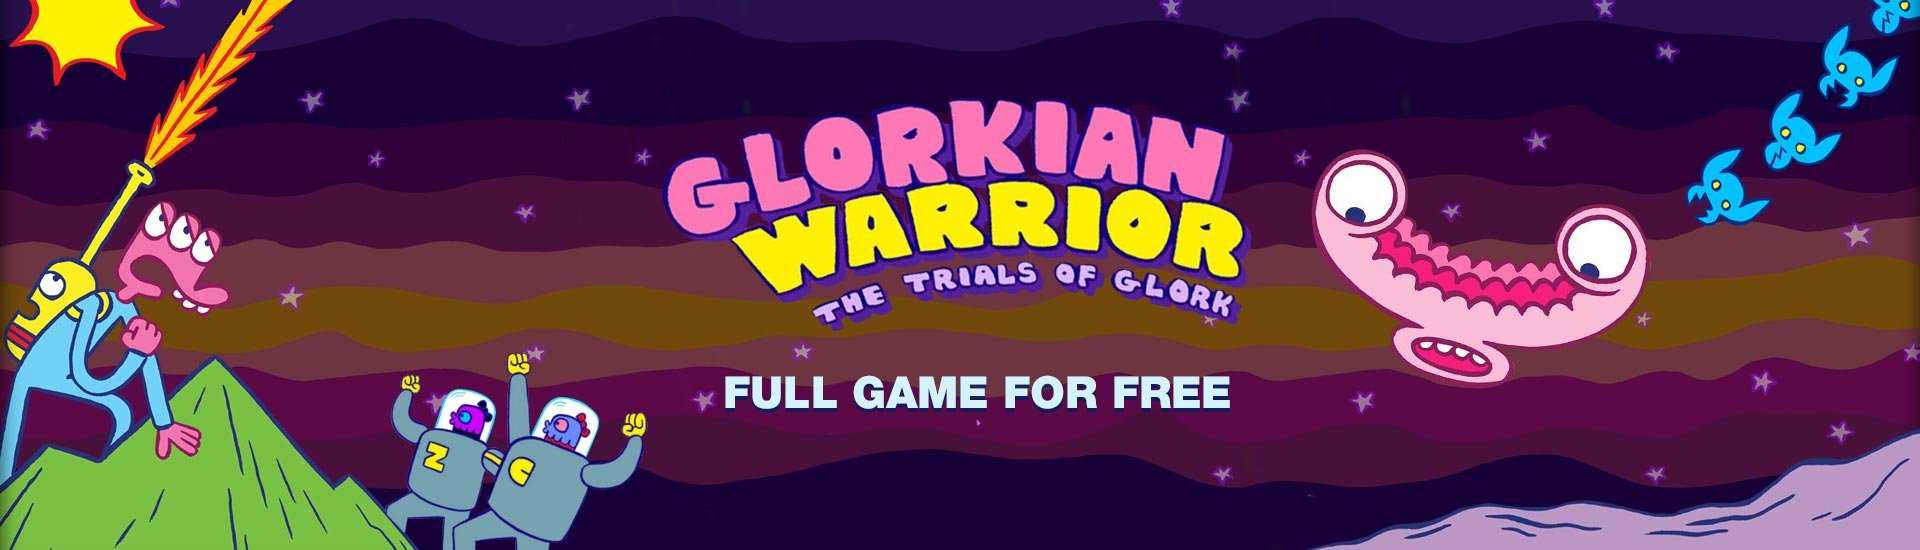 Glorkian Warrior: The Trials Of Glork cover